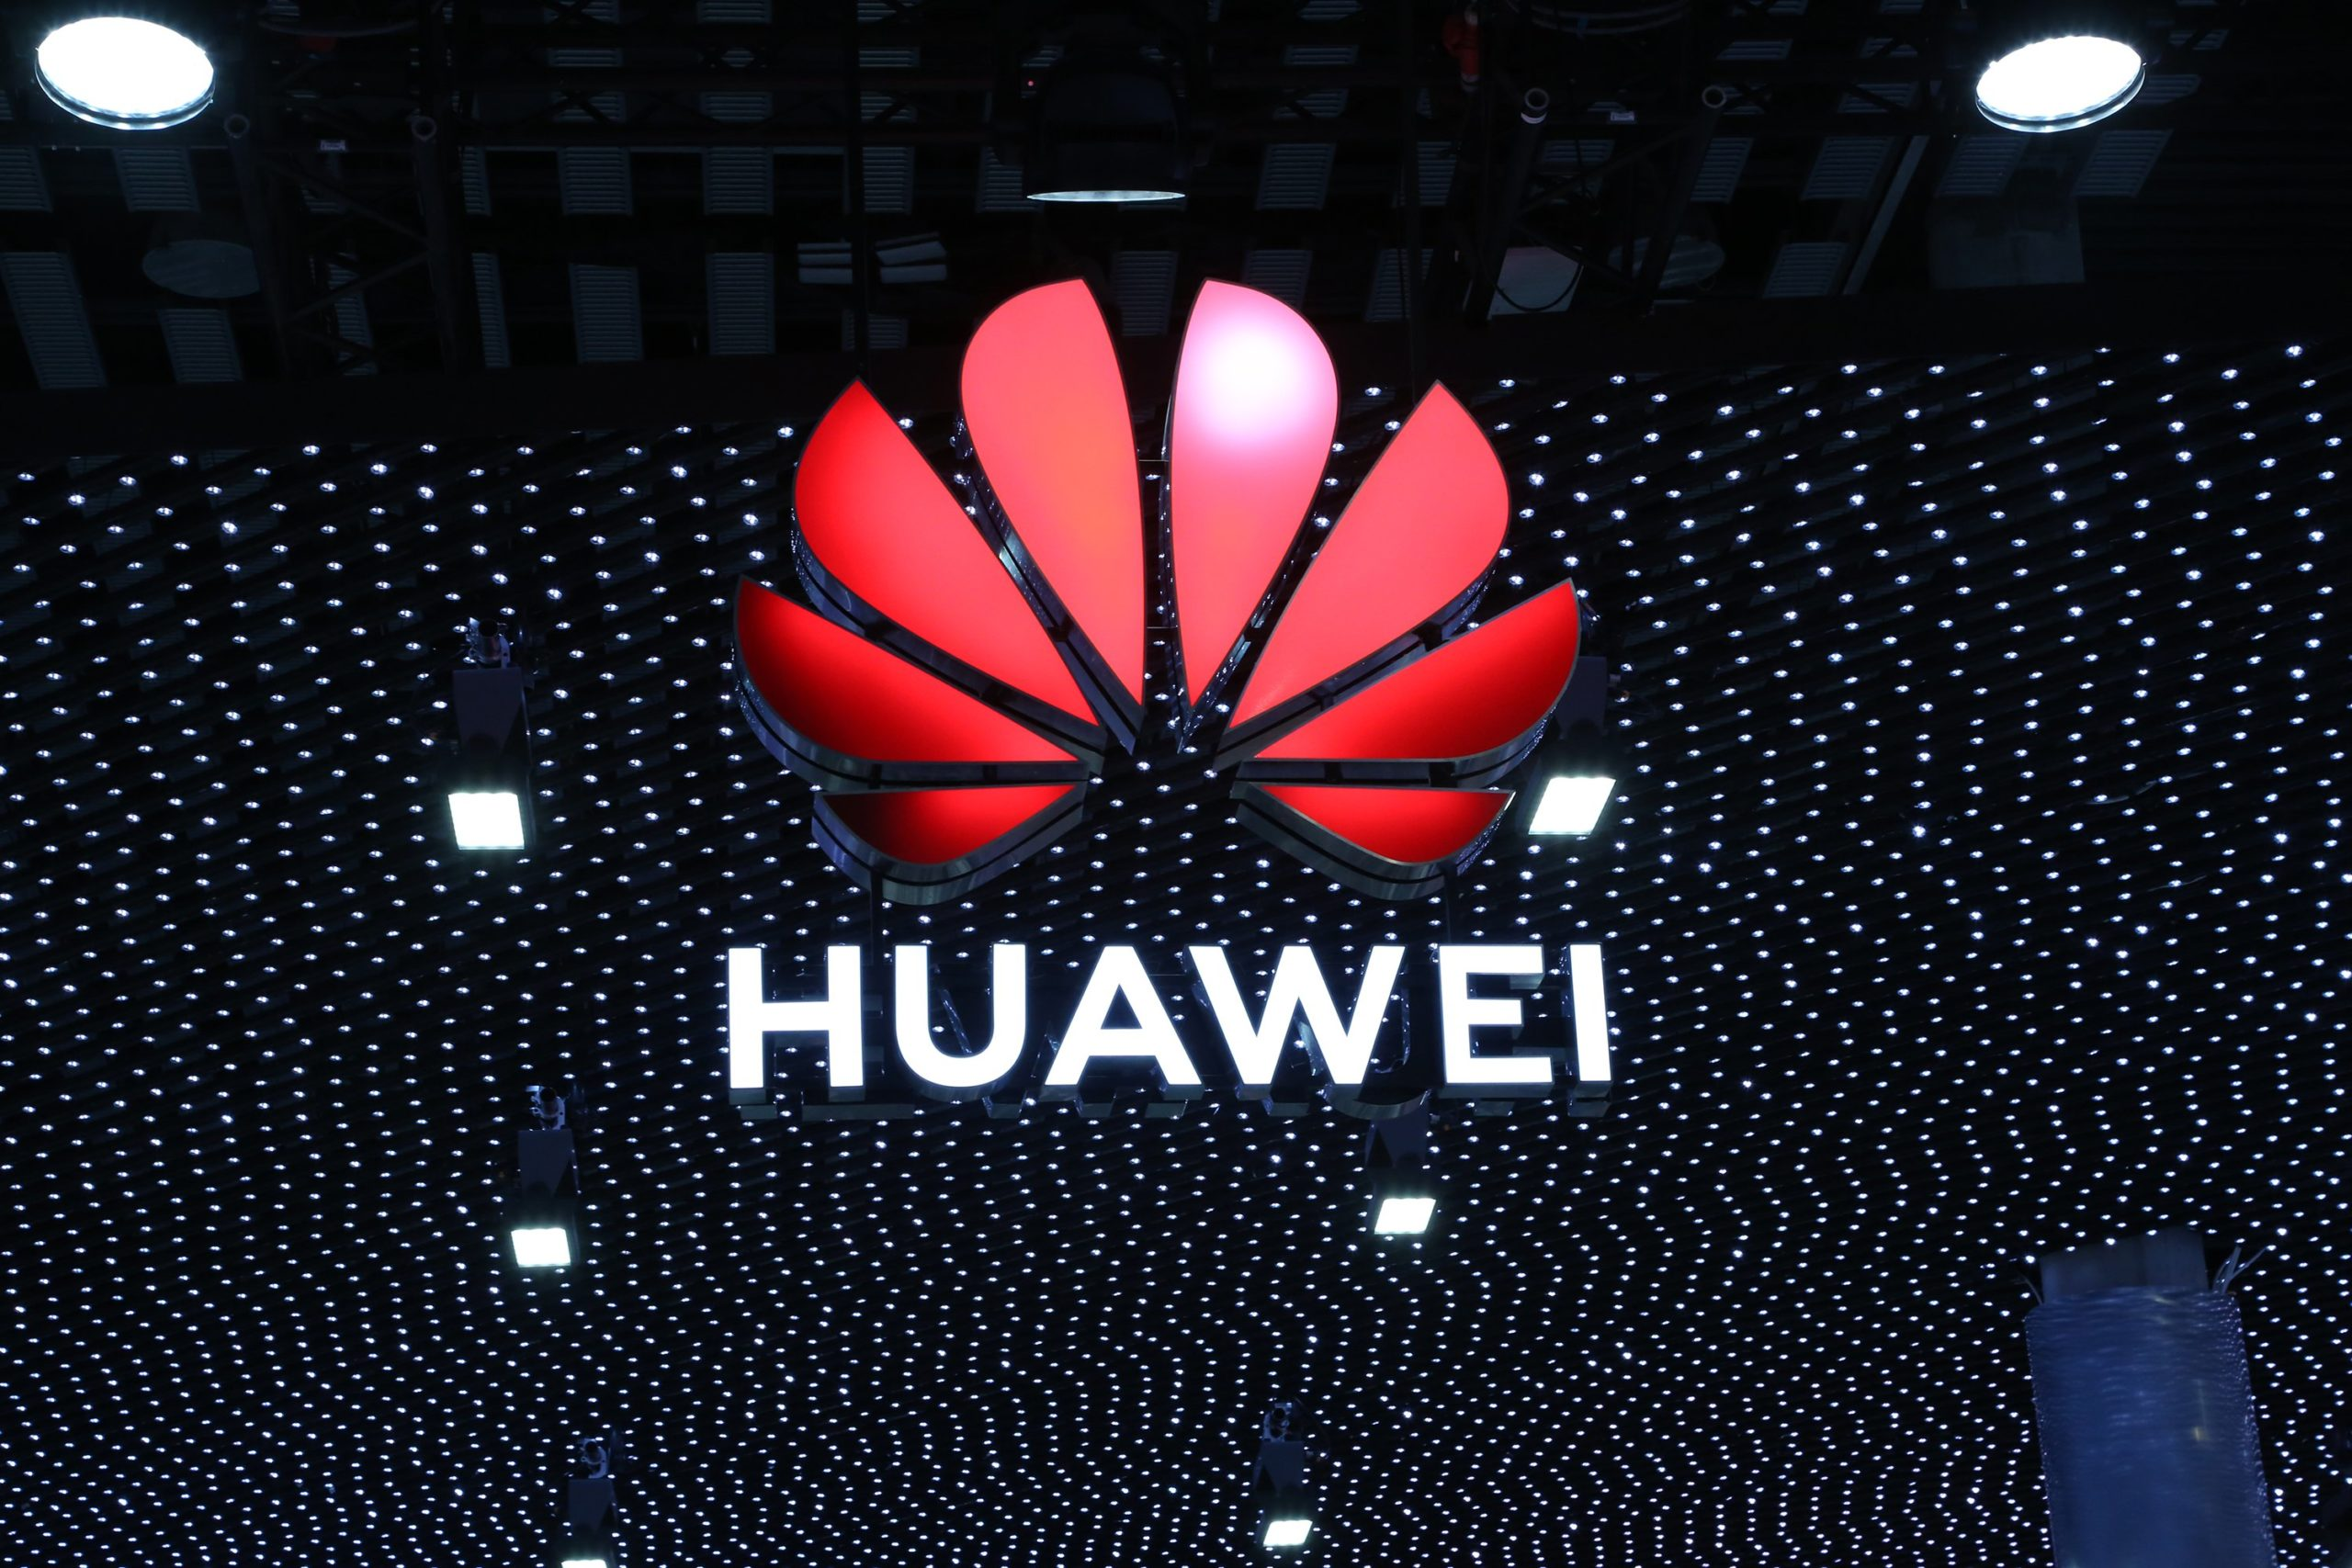 Huawei to launch a curved gaming monitor soon: Report